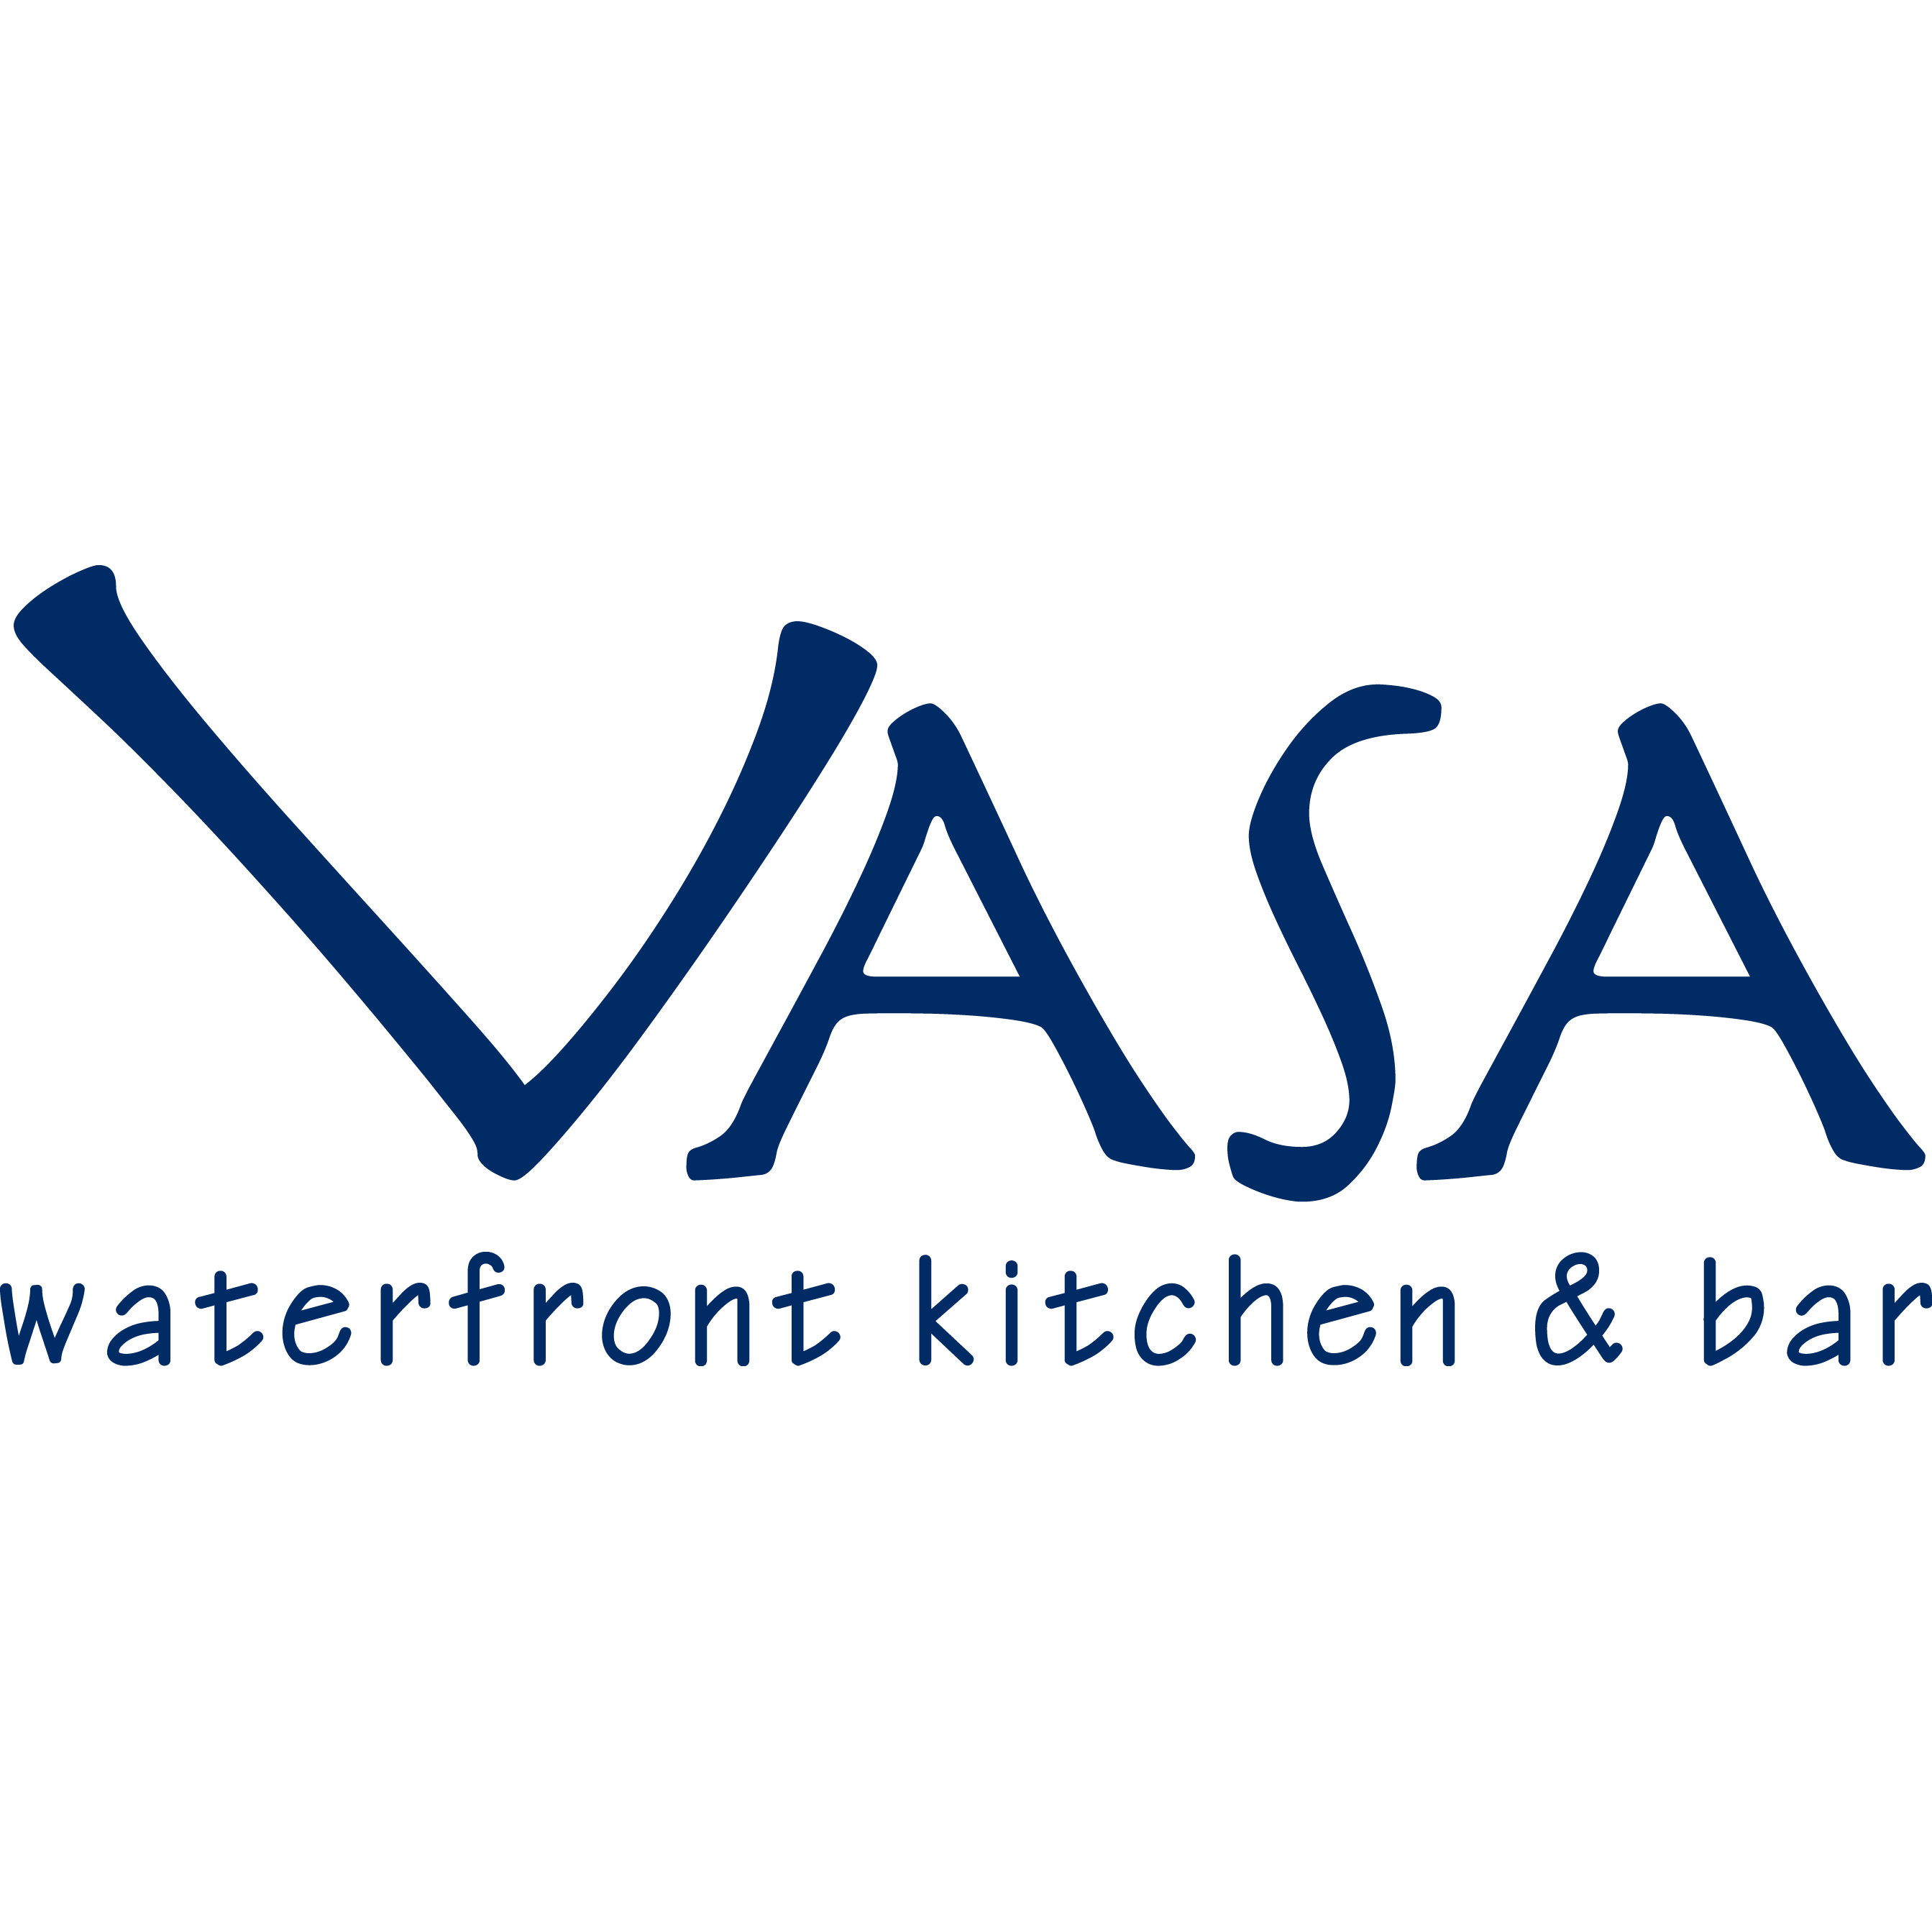 Vasa Waterfront Kitchen And Bar